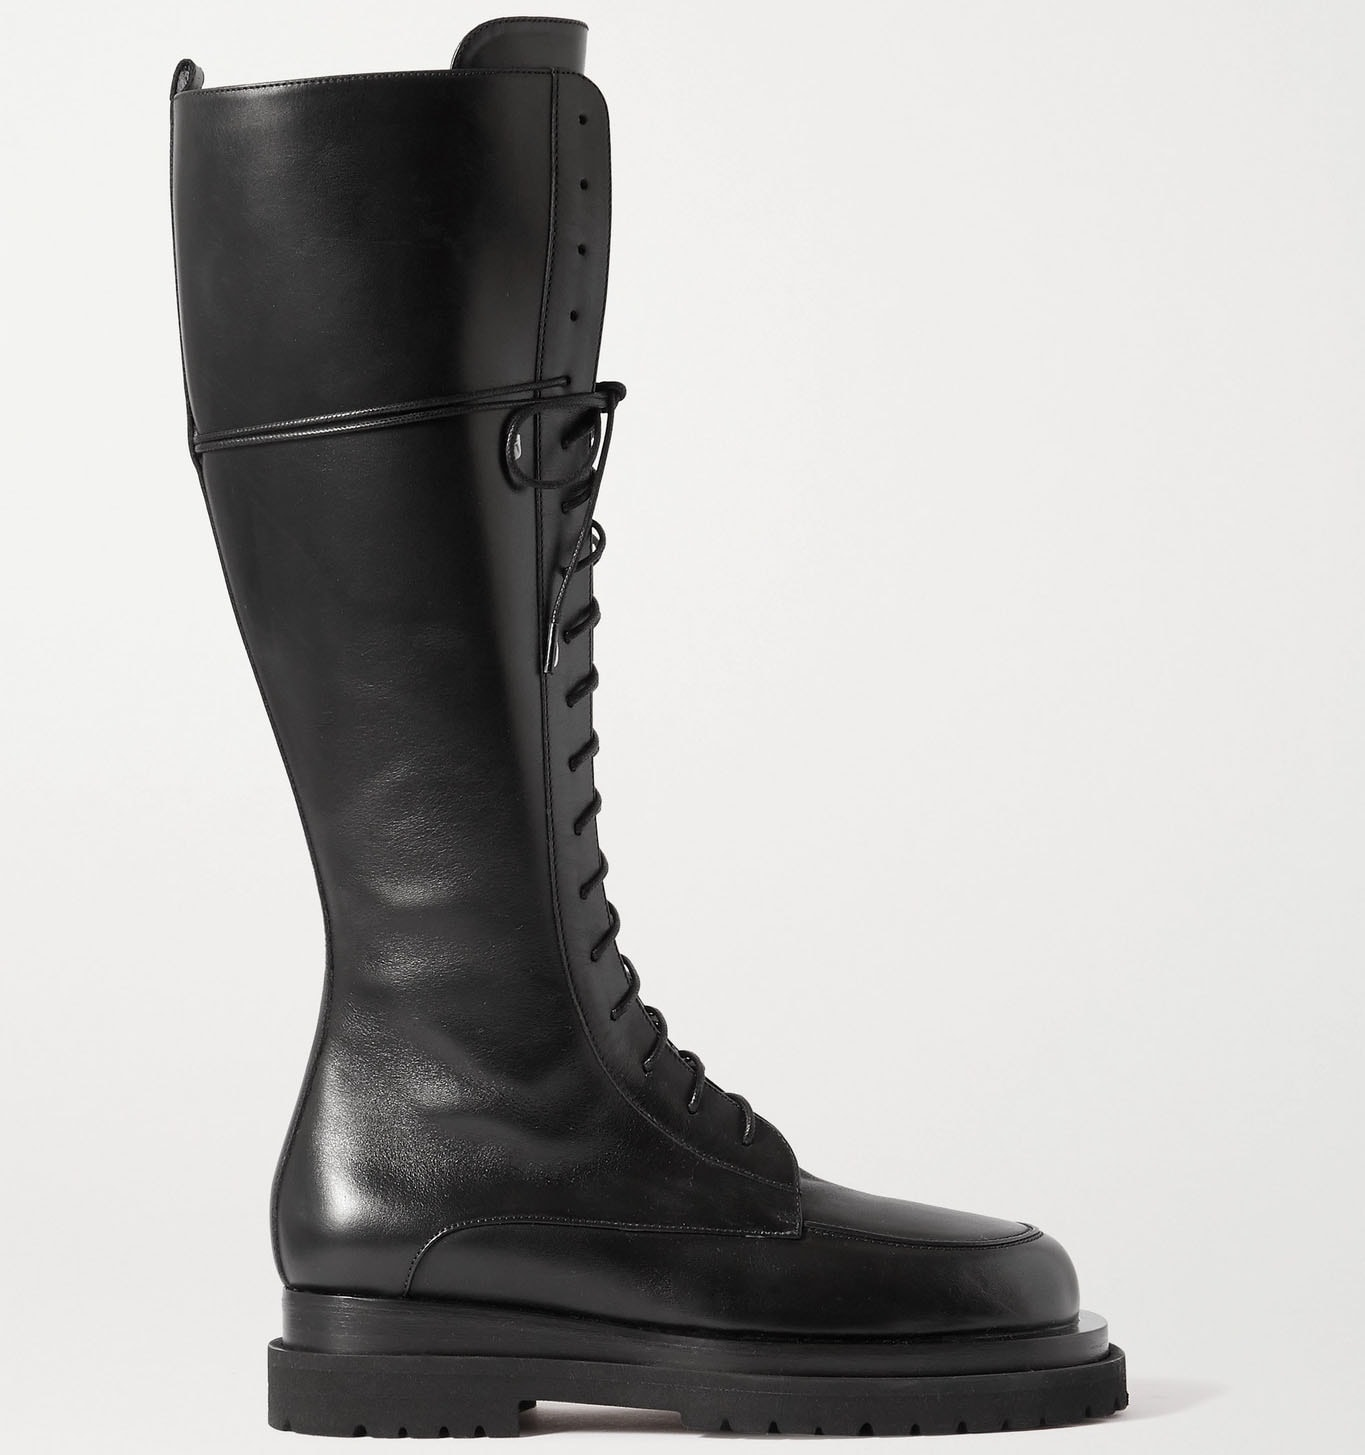 Magda Butrym's best-selling pair features side zips, lace-up closure, and thick lug soles